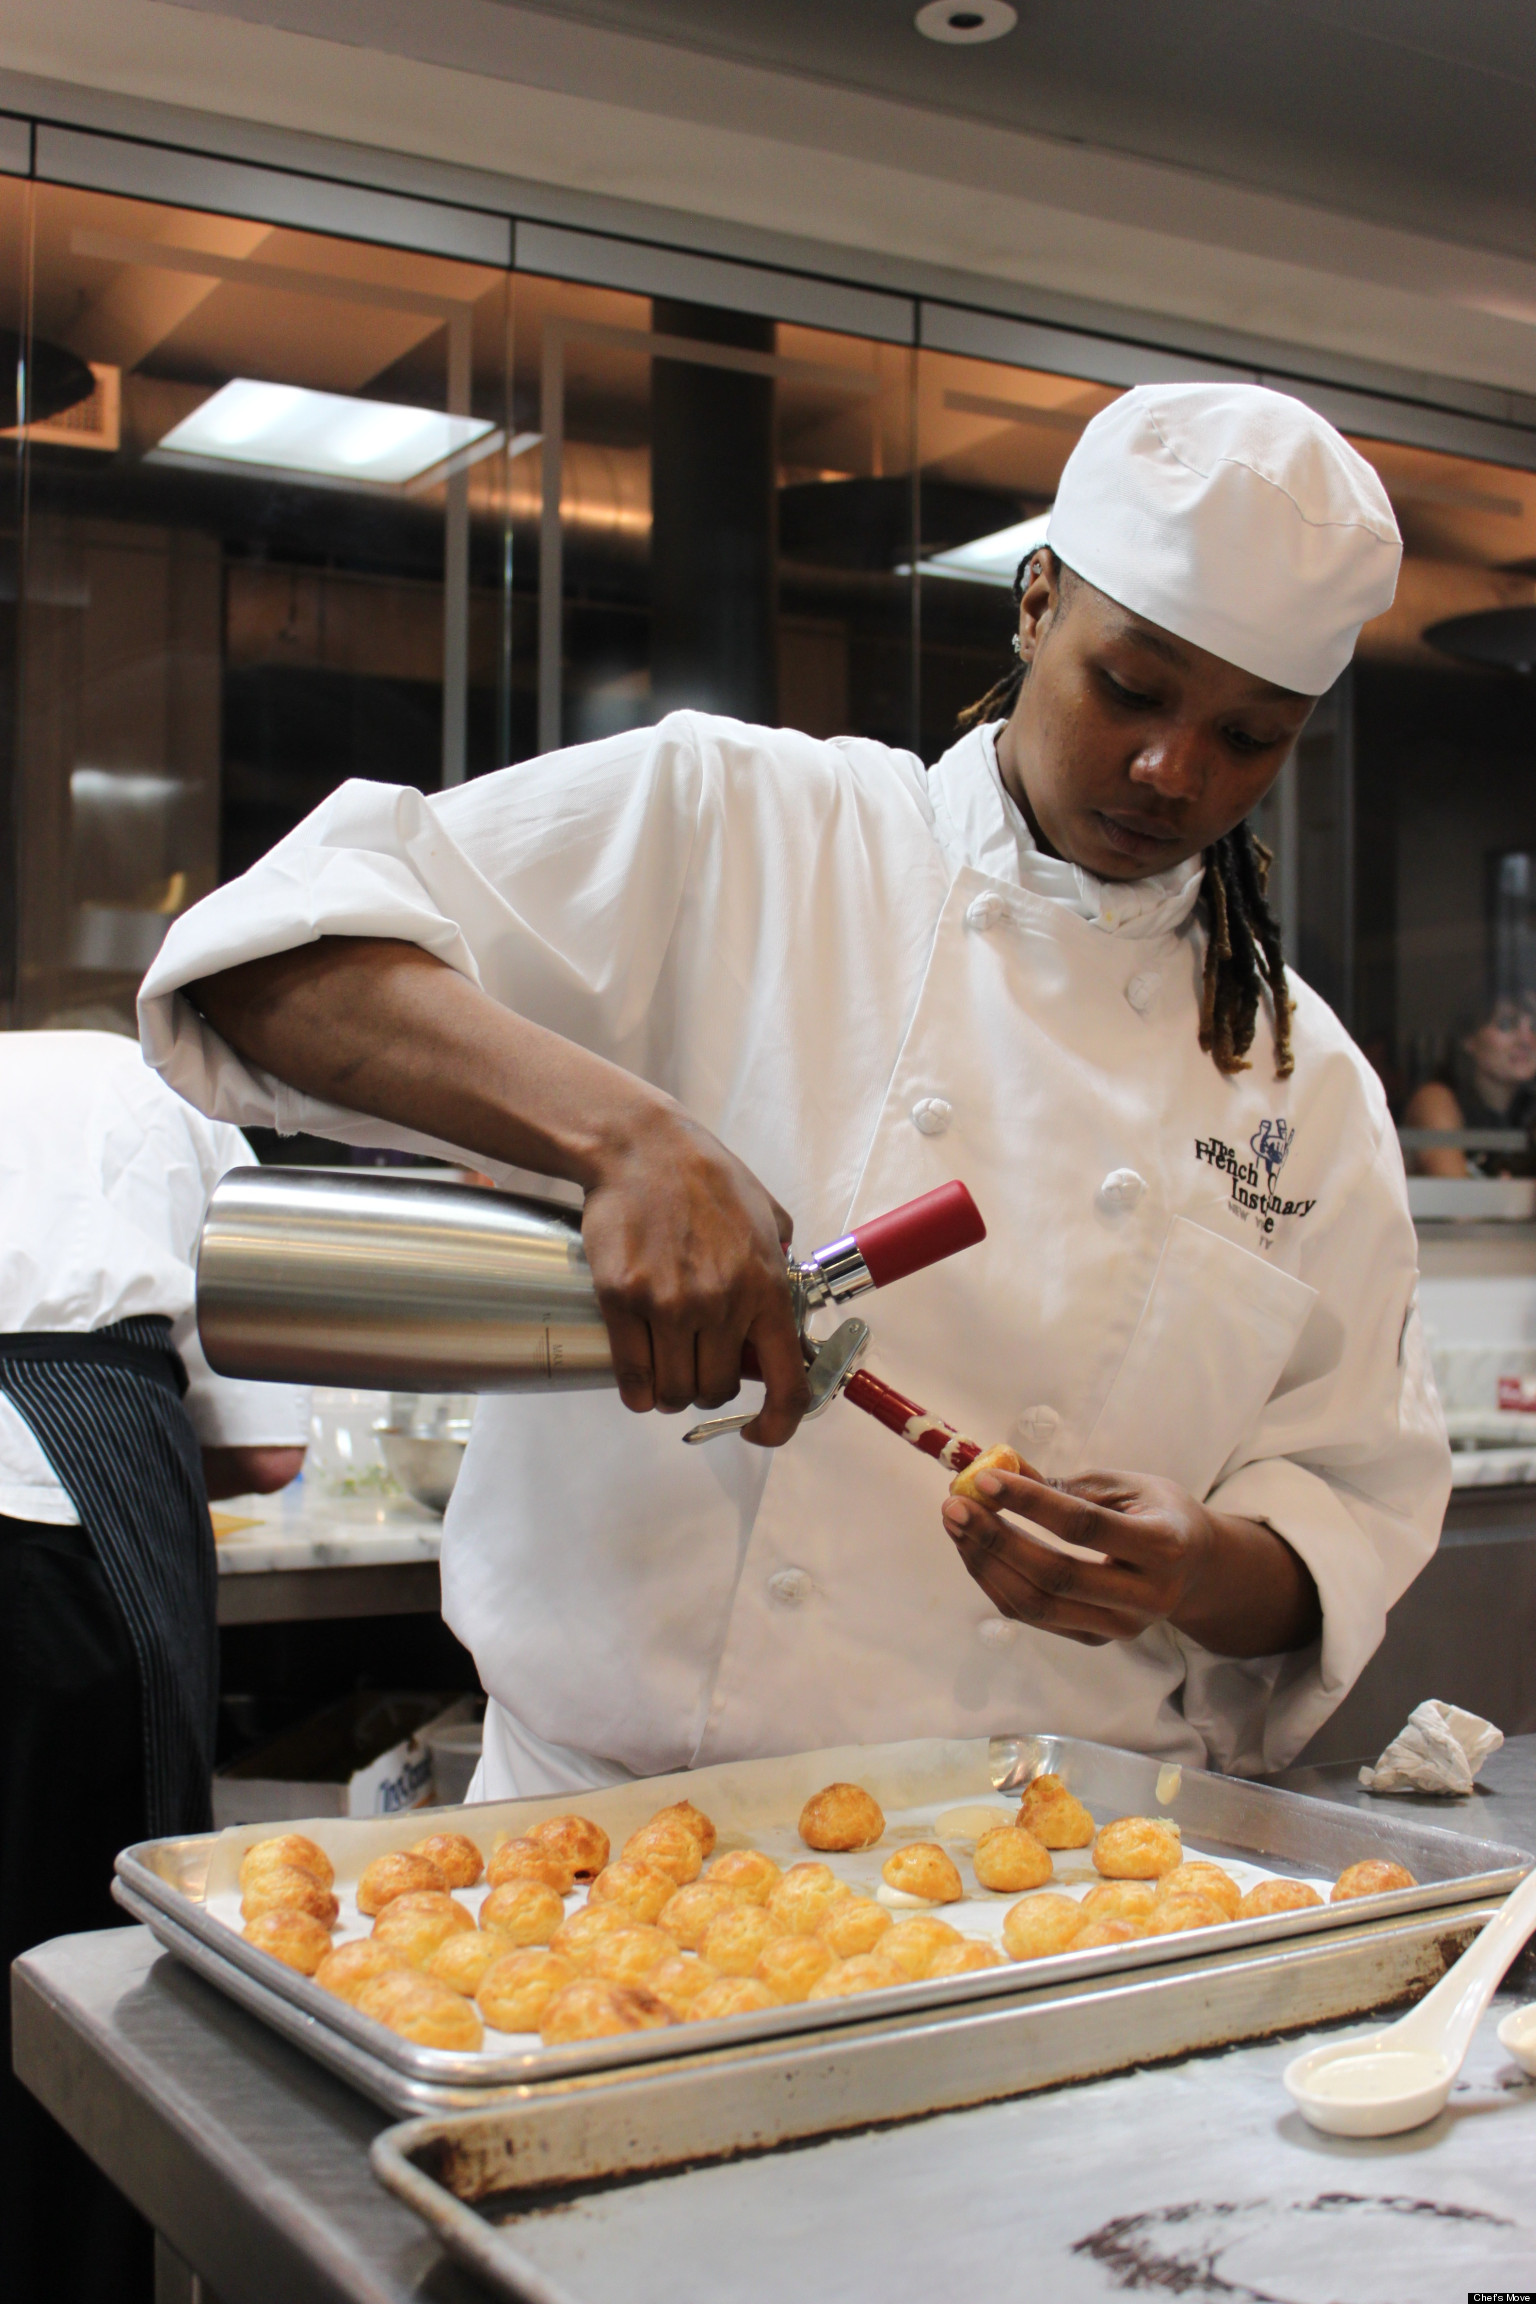 Syrena Johnson, Rising New Orleans Chef, Serves Up Super